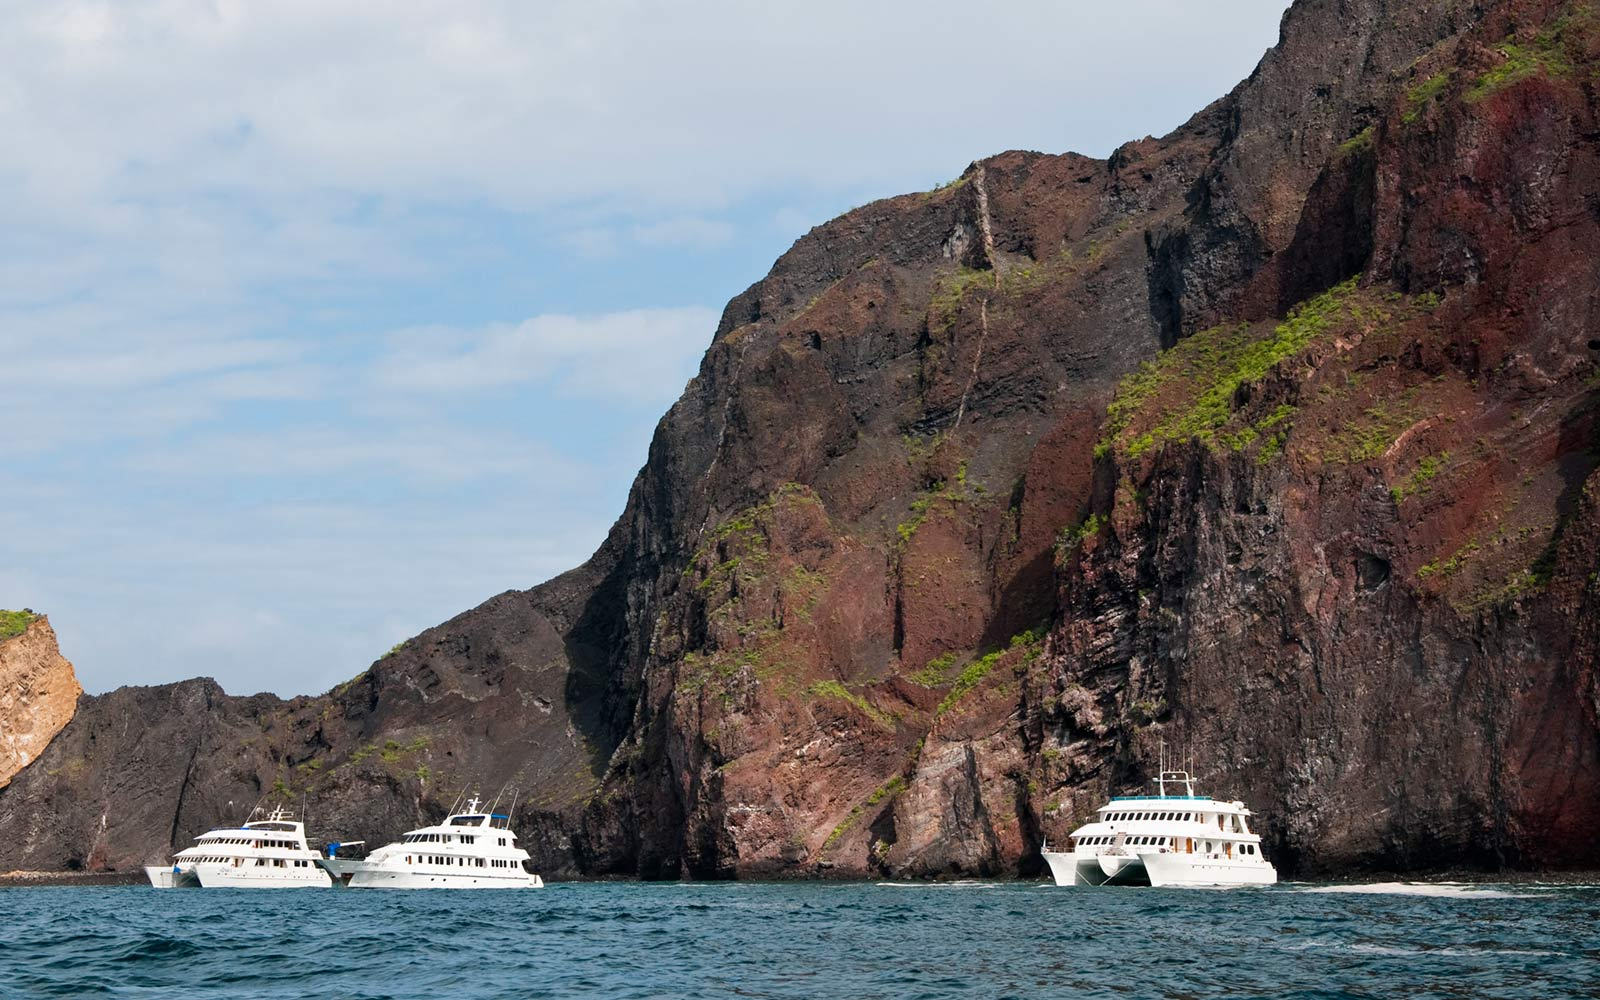 Cruise Ships, Galapagos Islands, Ecuador